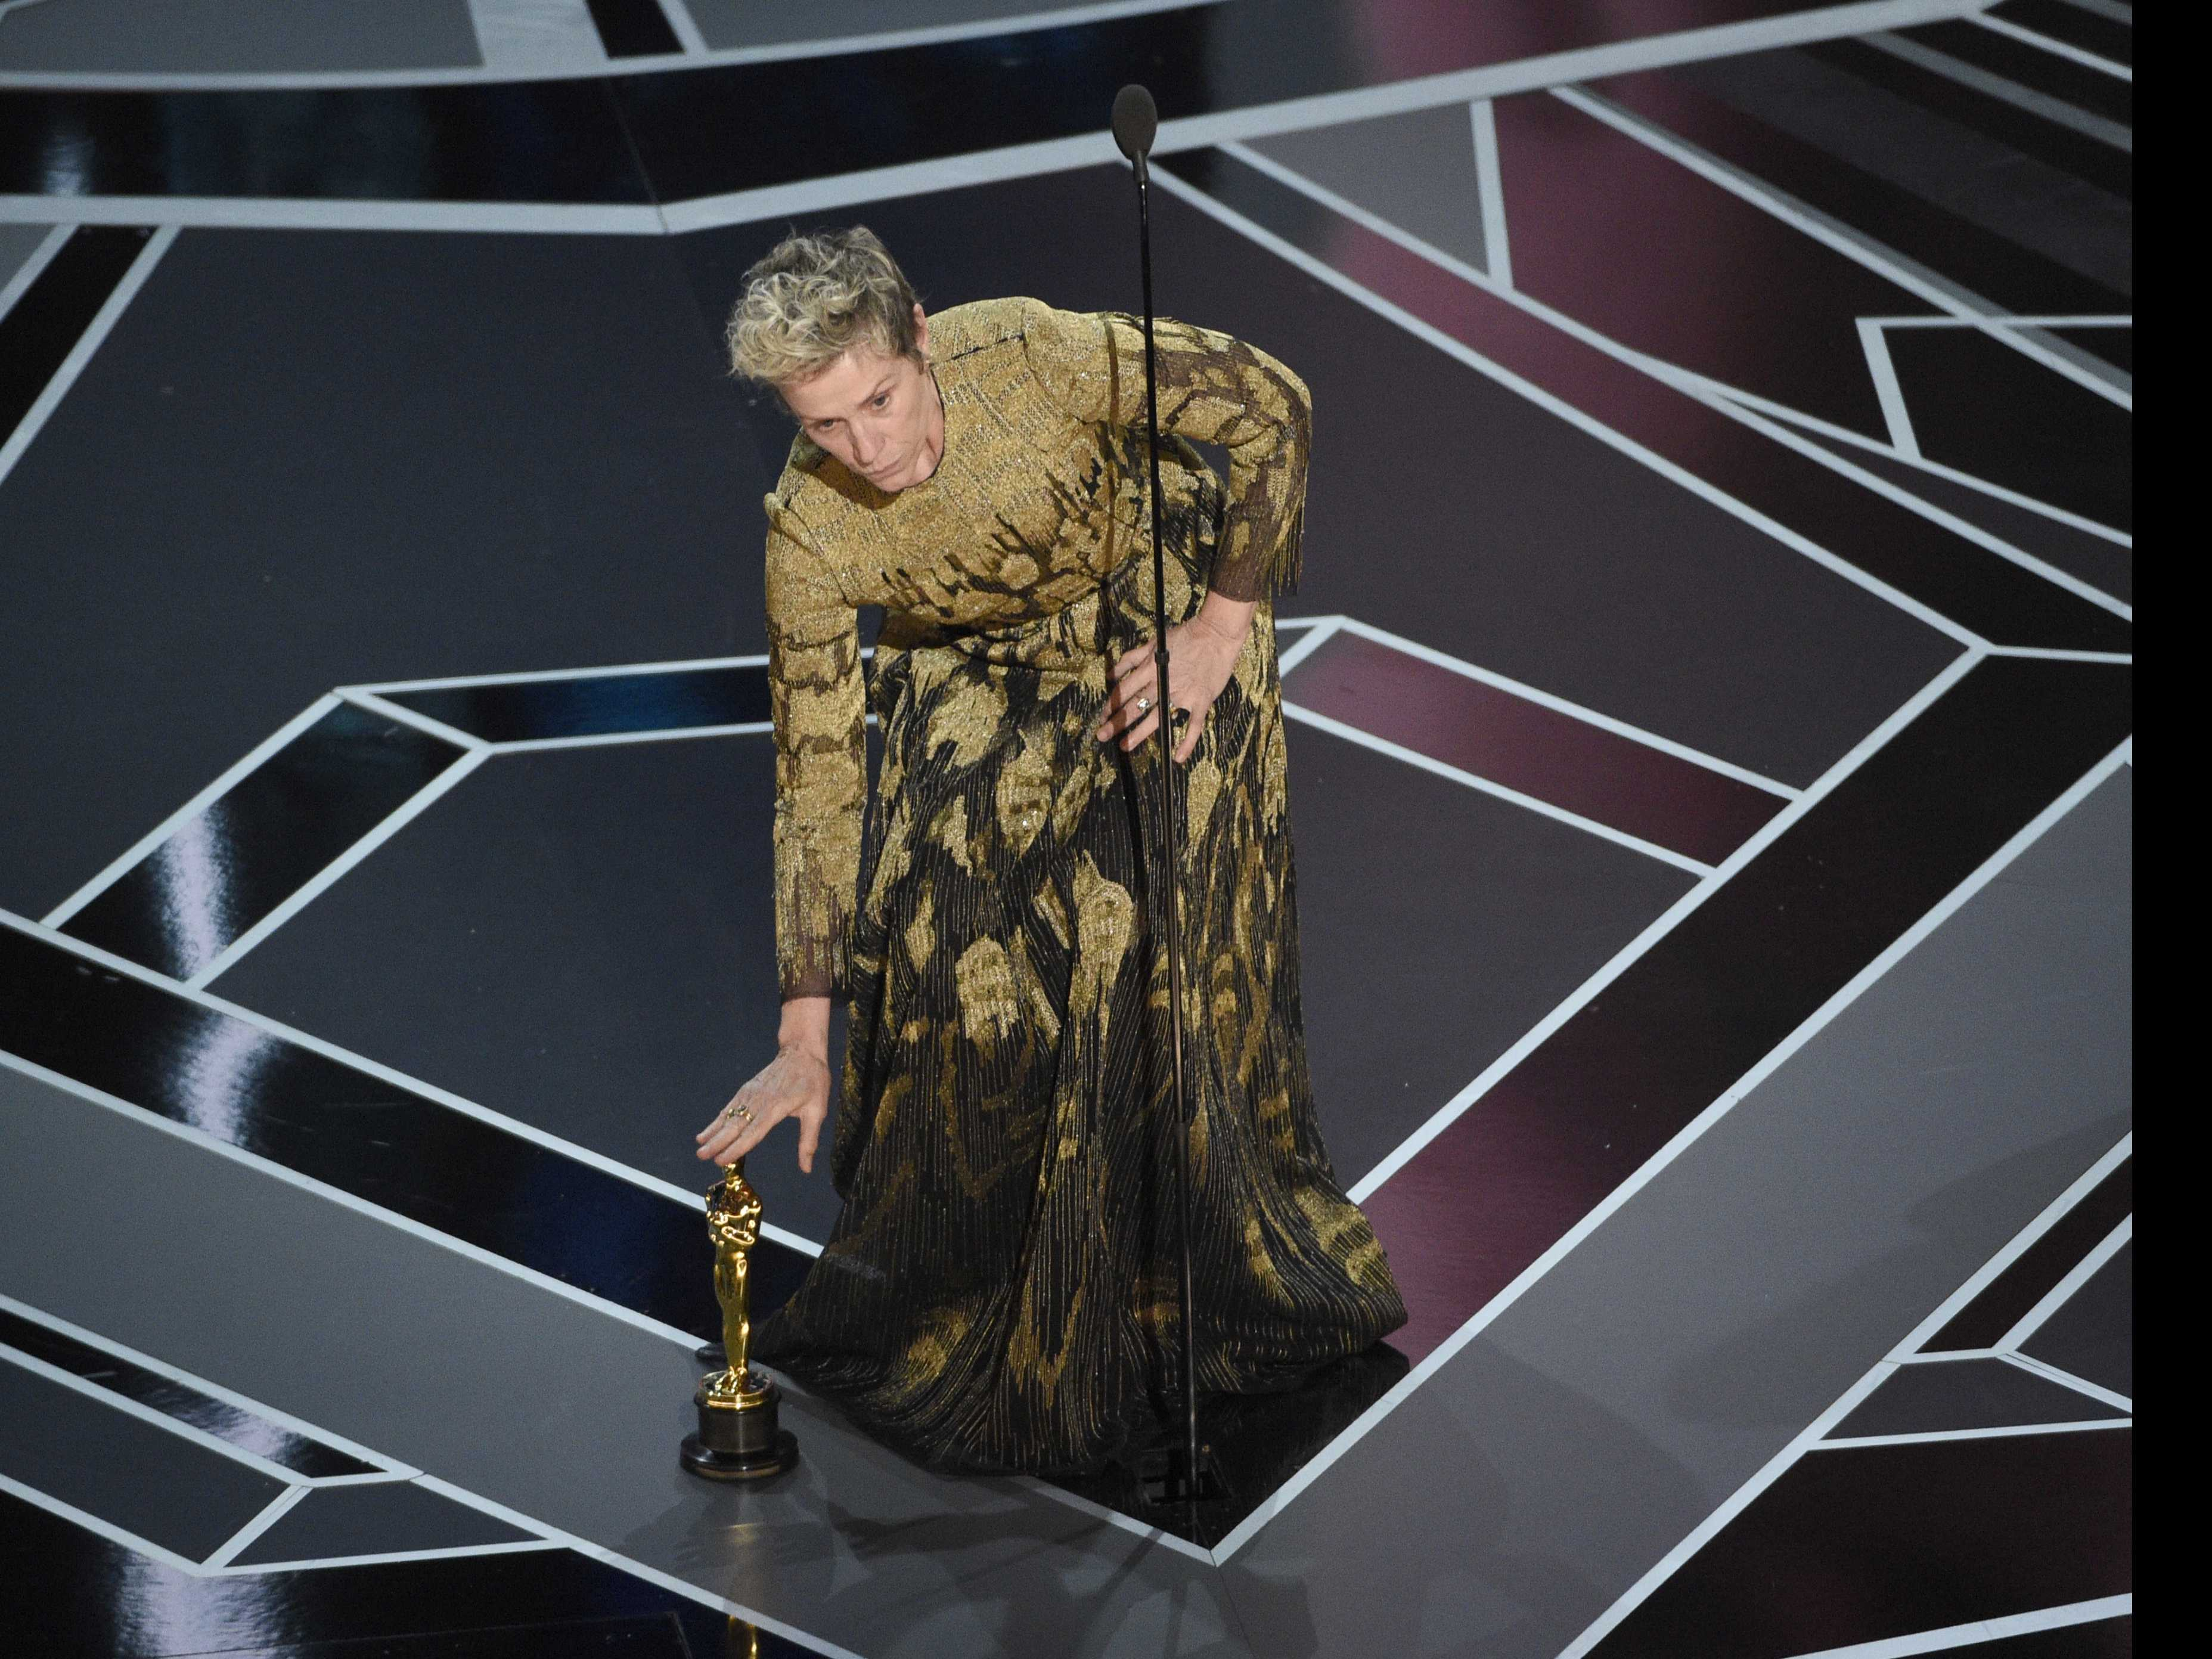 Man Arrested, Accused of Stealing McDormand's Oscar Trophy